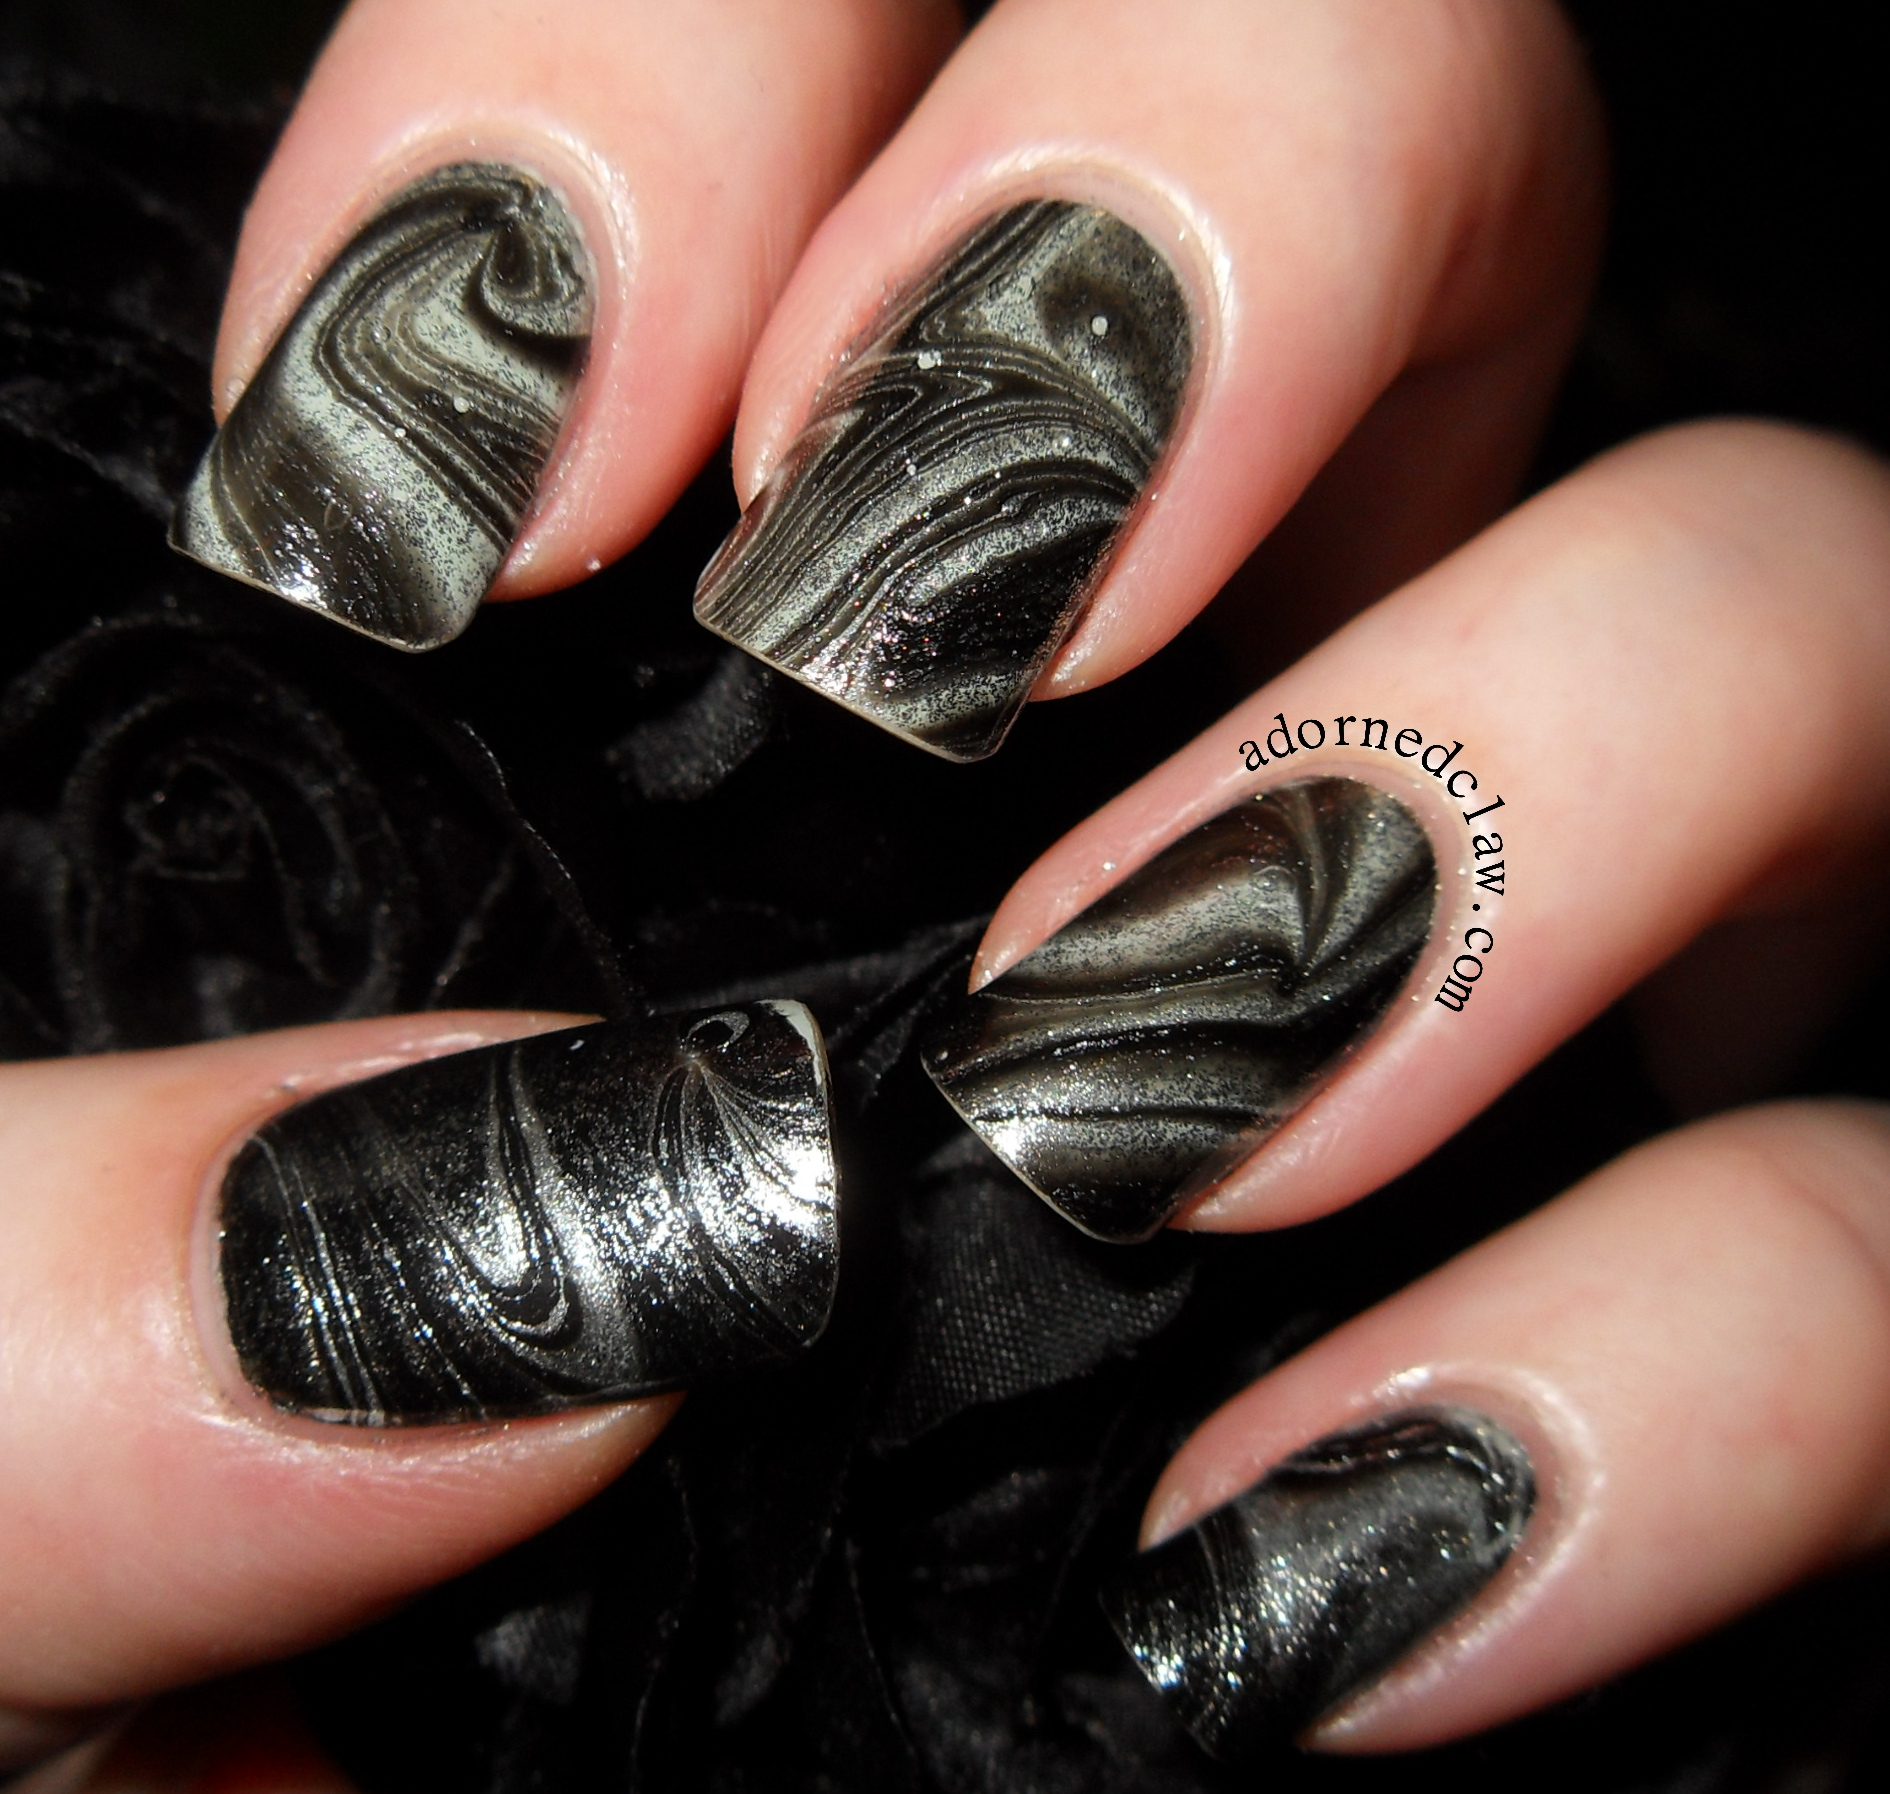 The Adorned Claw: Black And Silver Water Marble